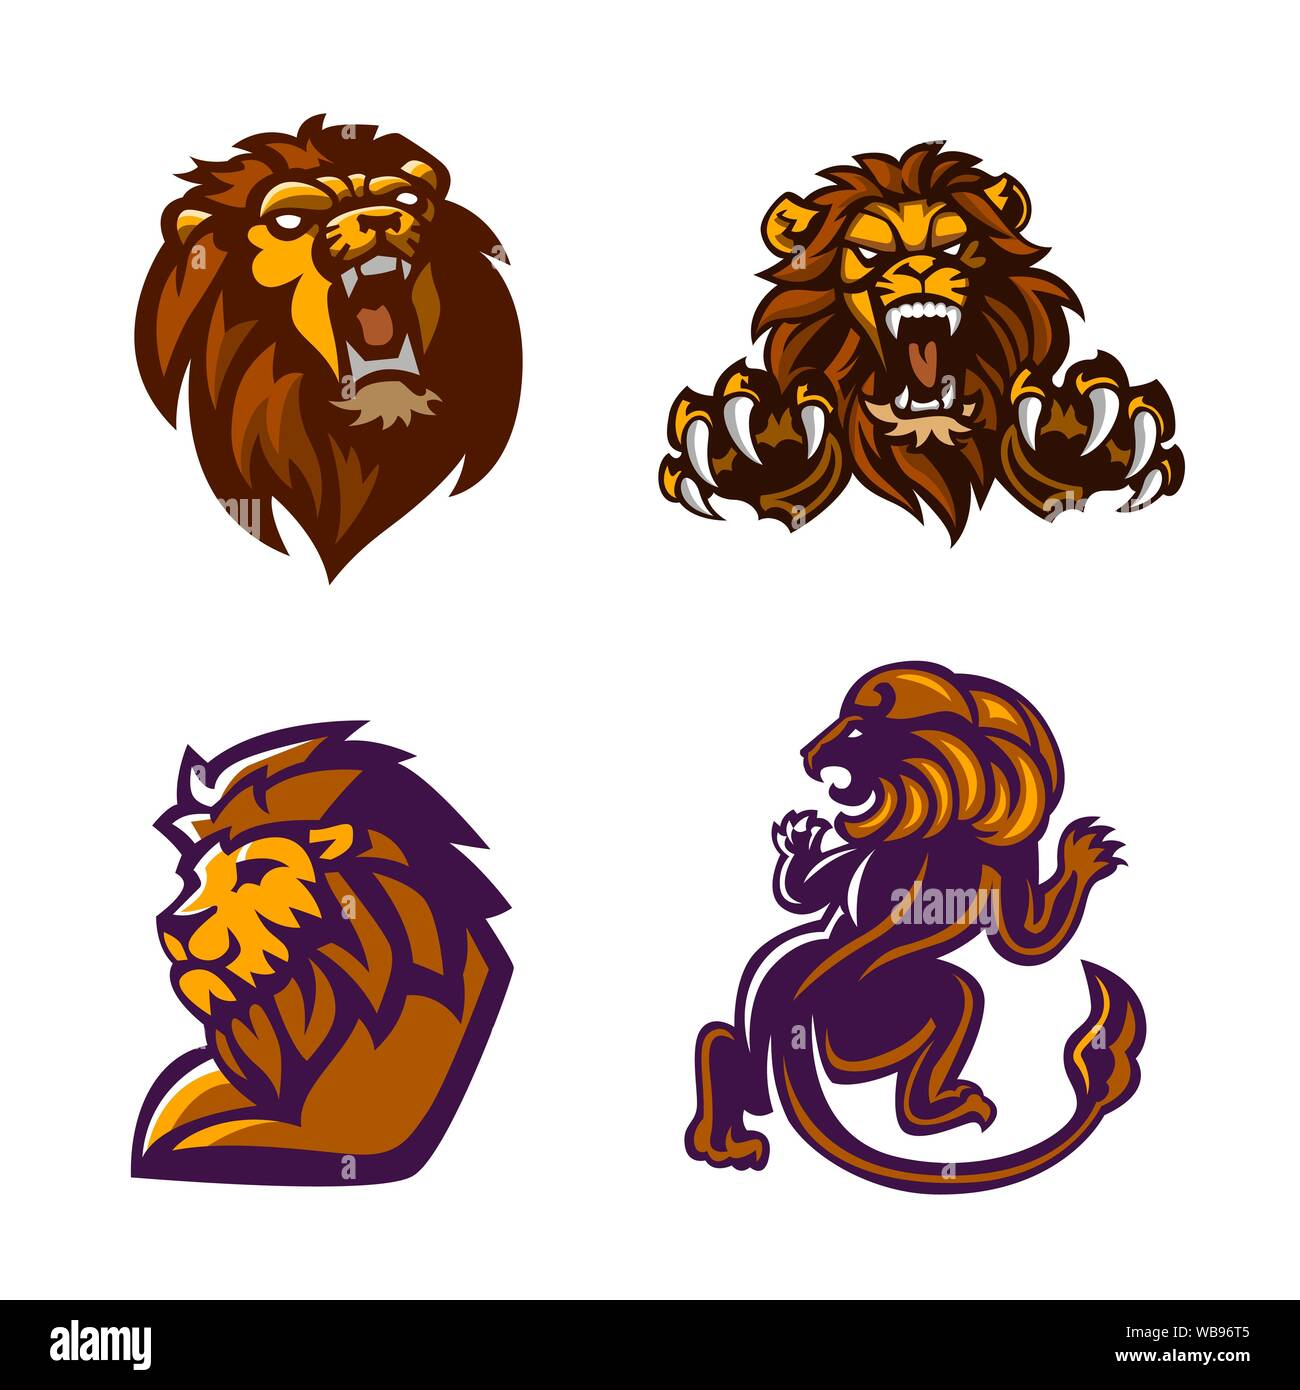 Lion Mascot Logo Set Vector Illustration Stock Vector Image Art Alamy Teaching tools posters banners signs stickers misc. https www alamy com lion mascot logo set vector illustration image265119685 html